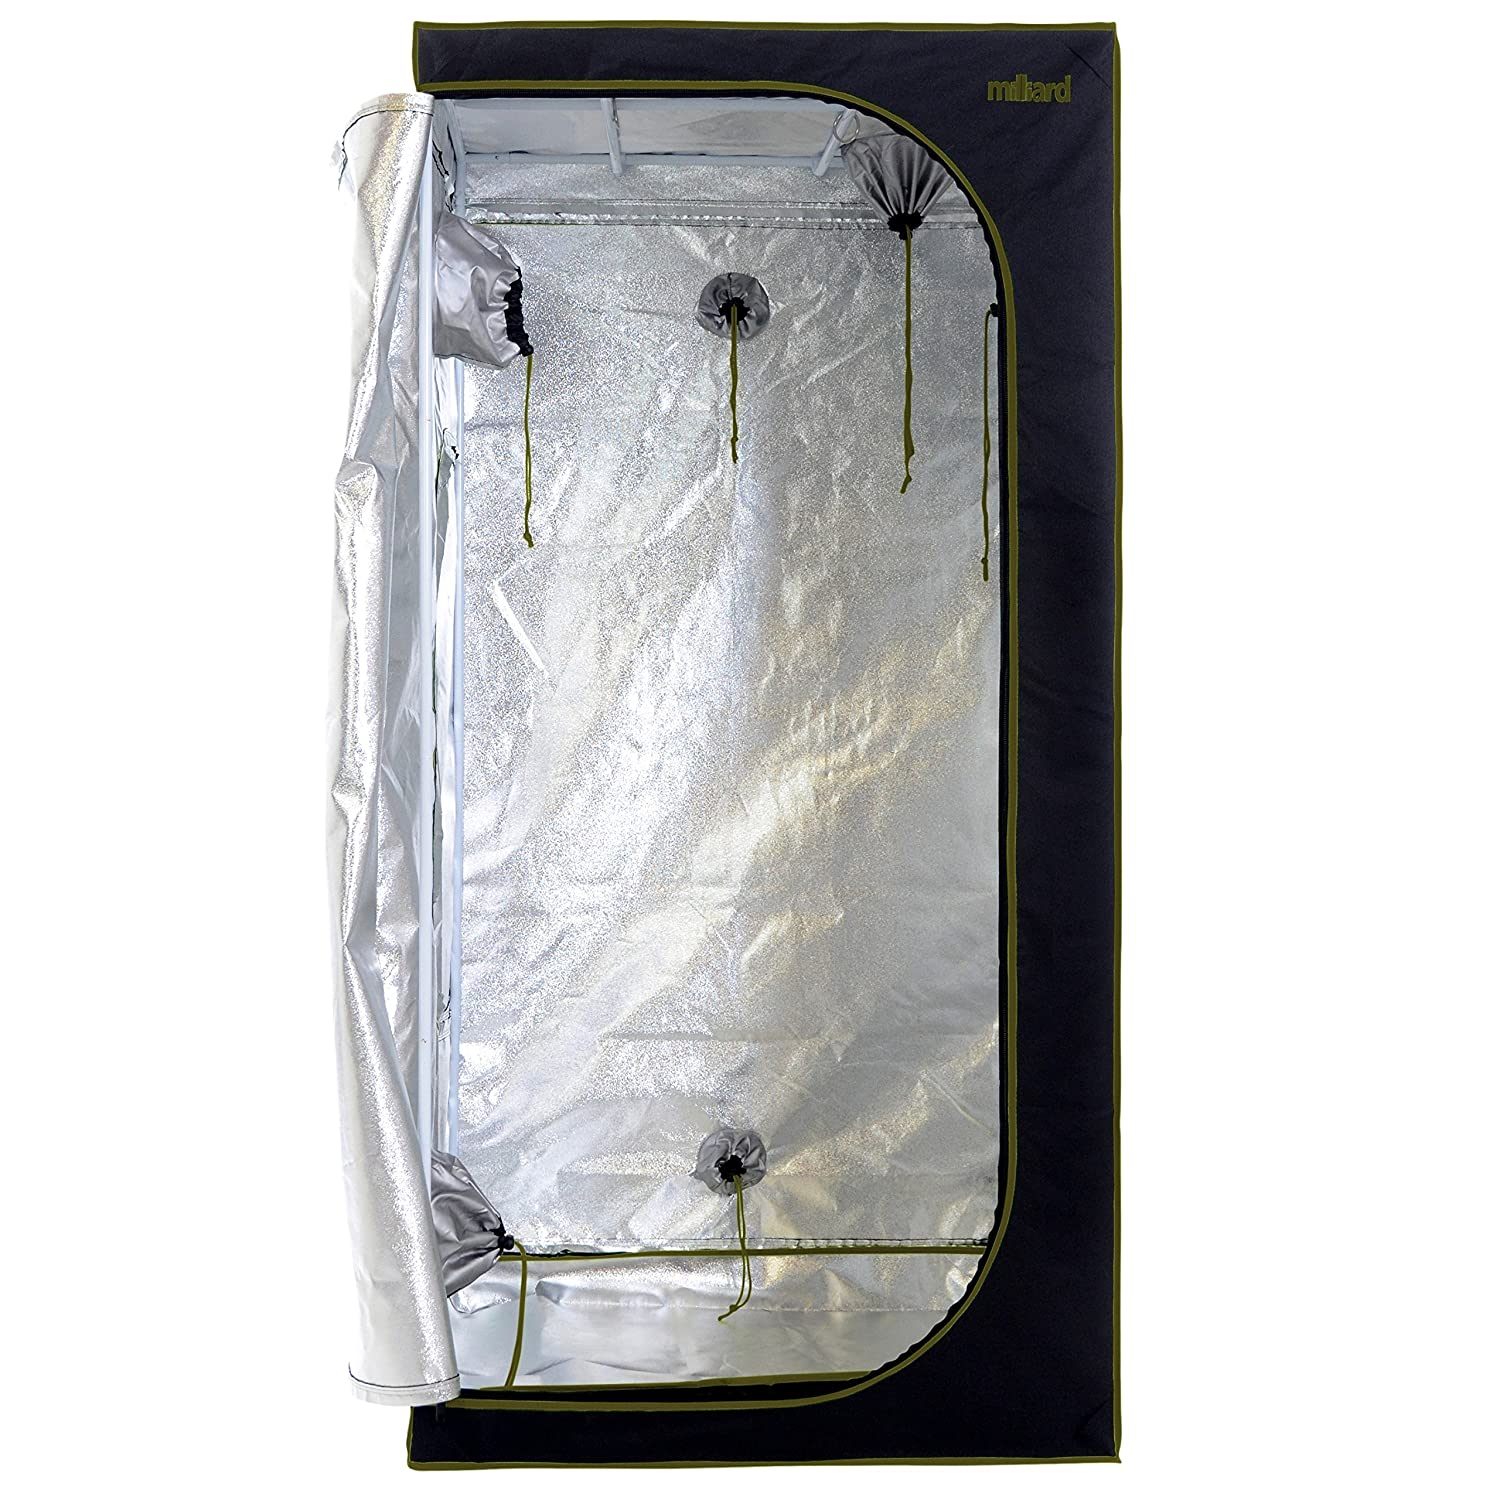 MILLIARD Horticulture D-Door 3×3 Size Grow Tent